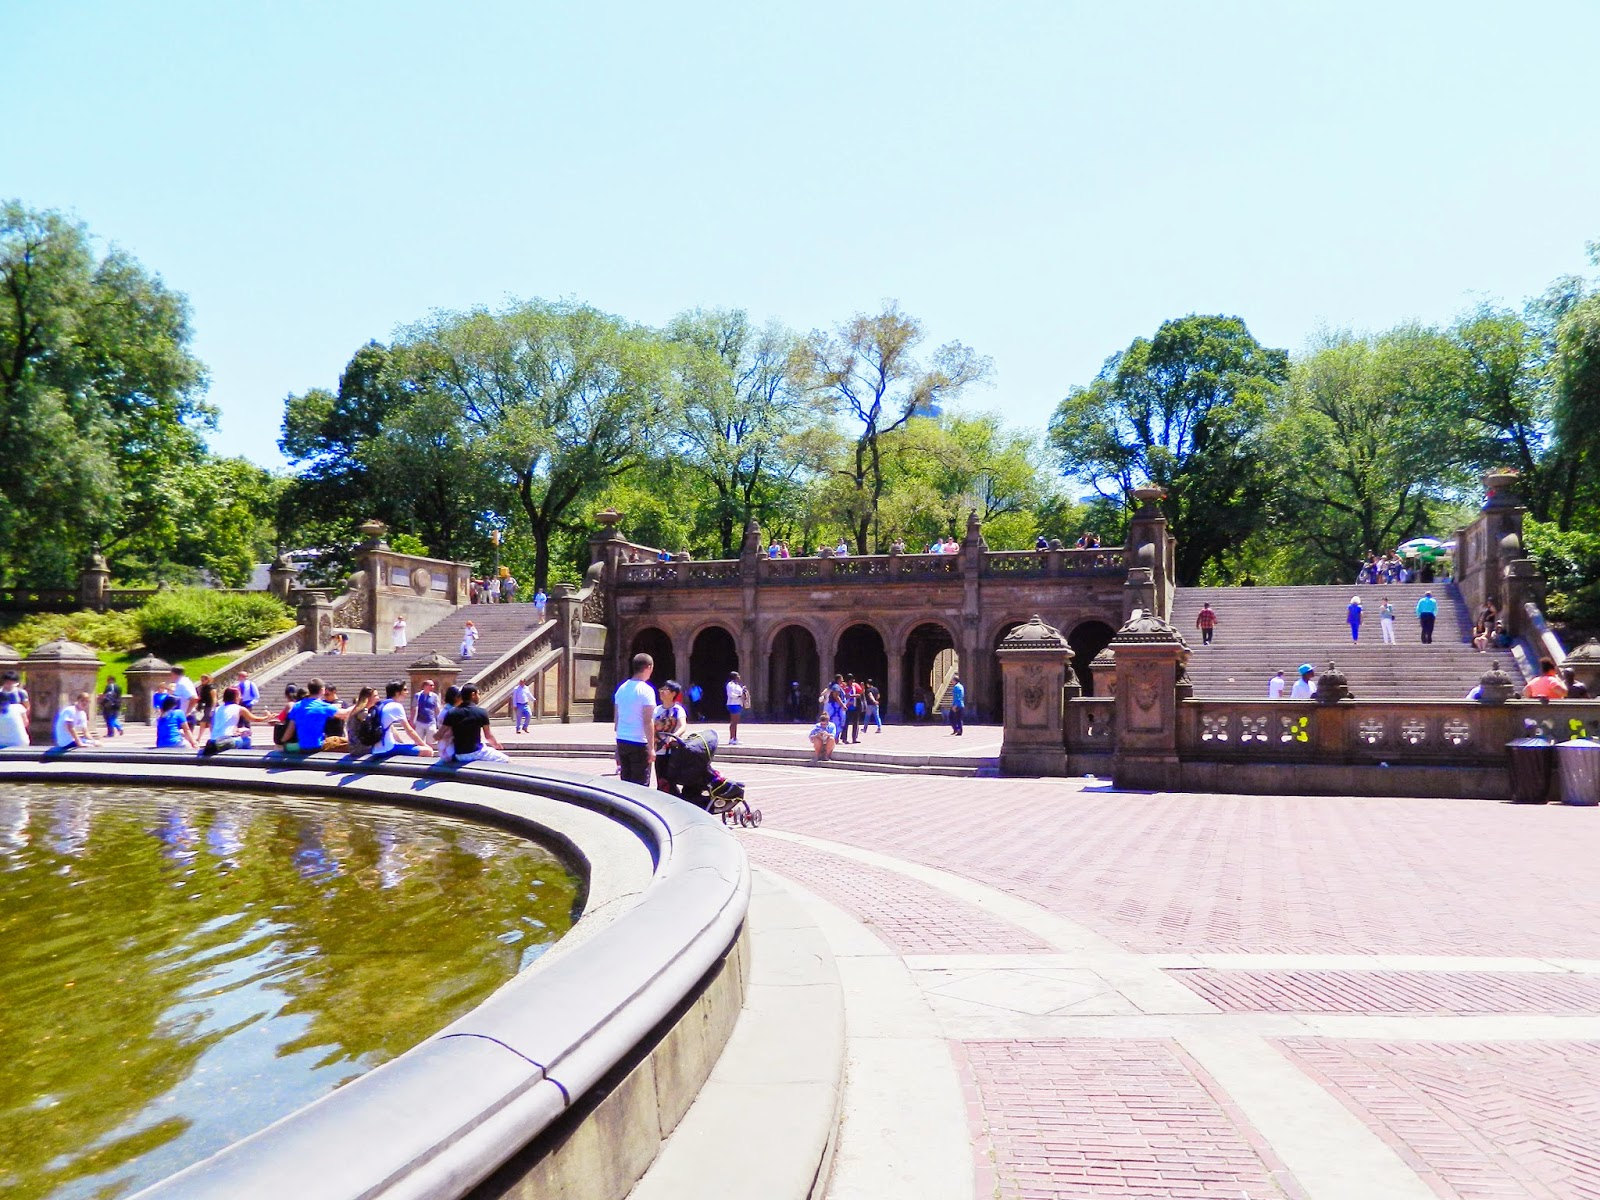 new york city central park architecture fountain green nature people